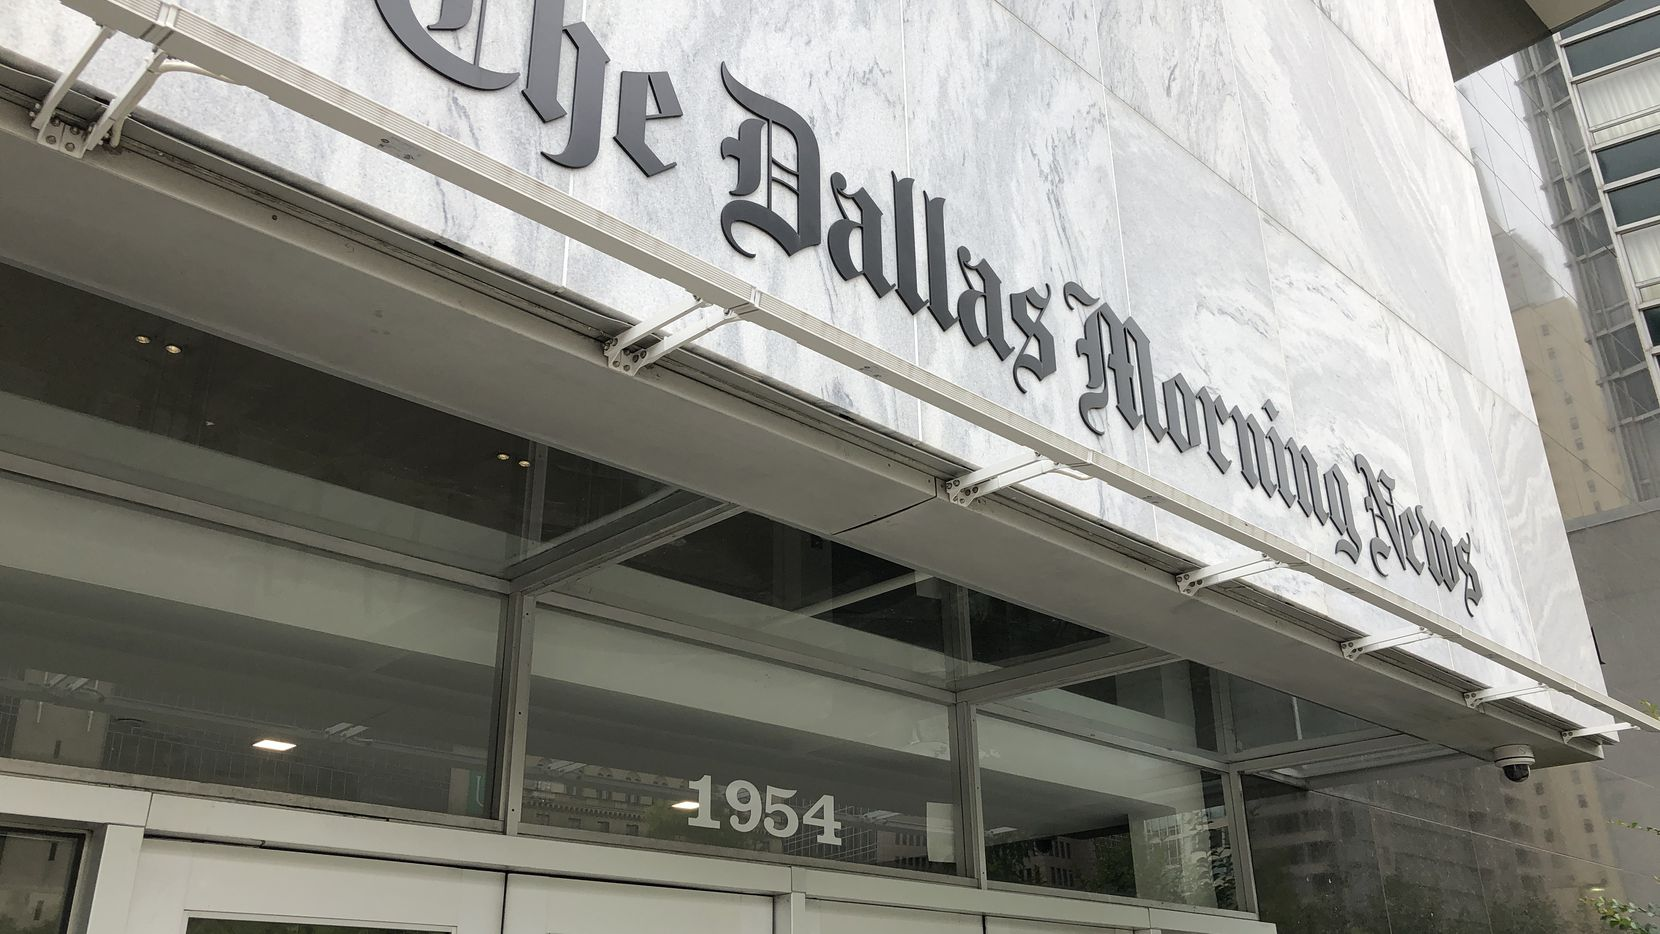 The Dallas Morning News headquarters is on Commerce Street in downtown Dallas.